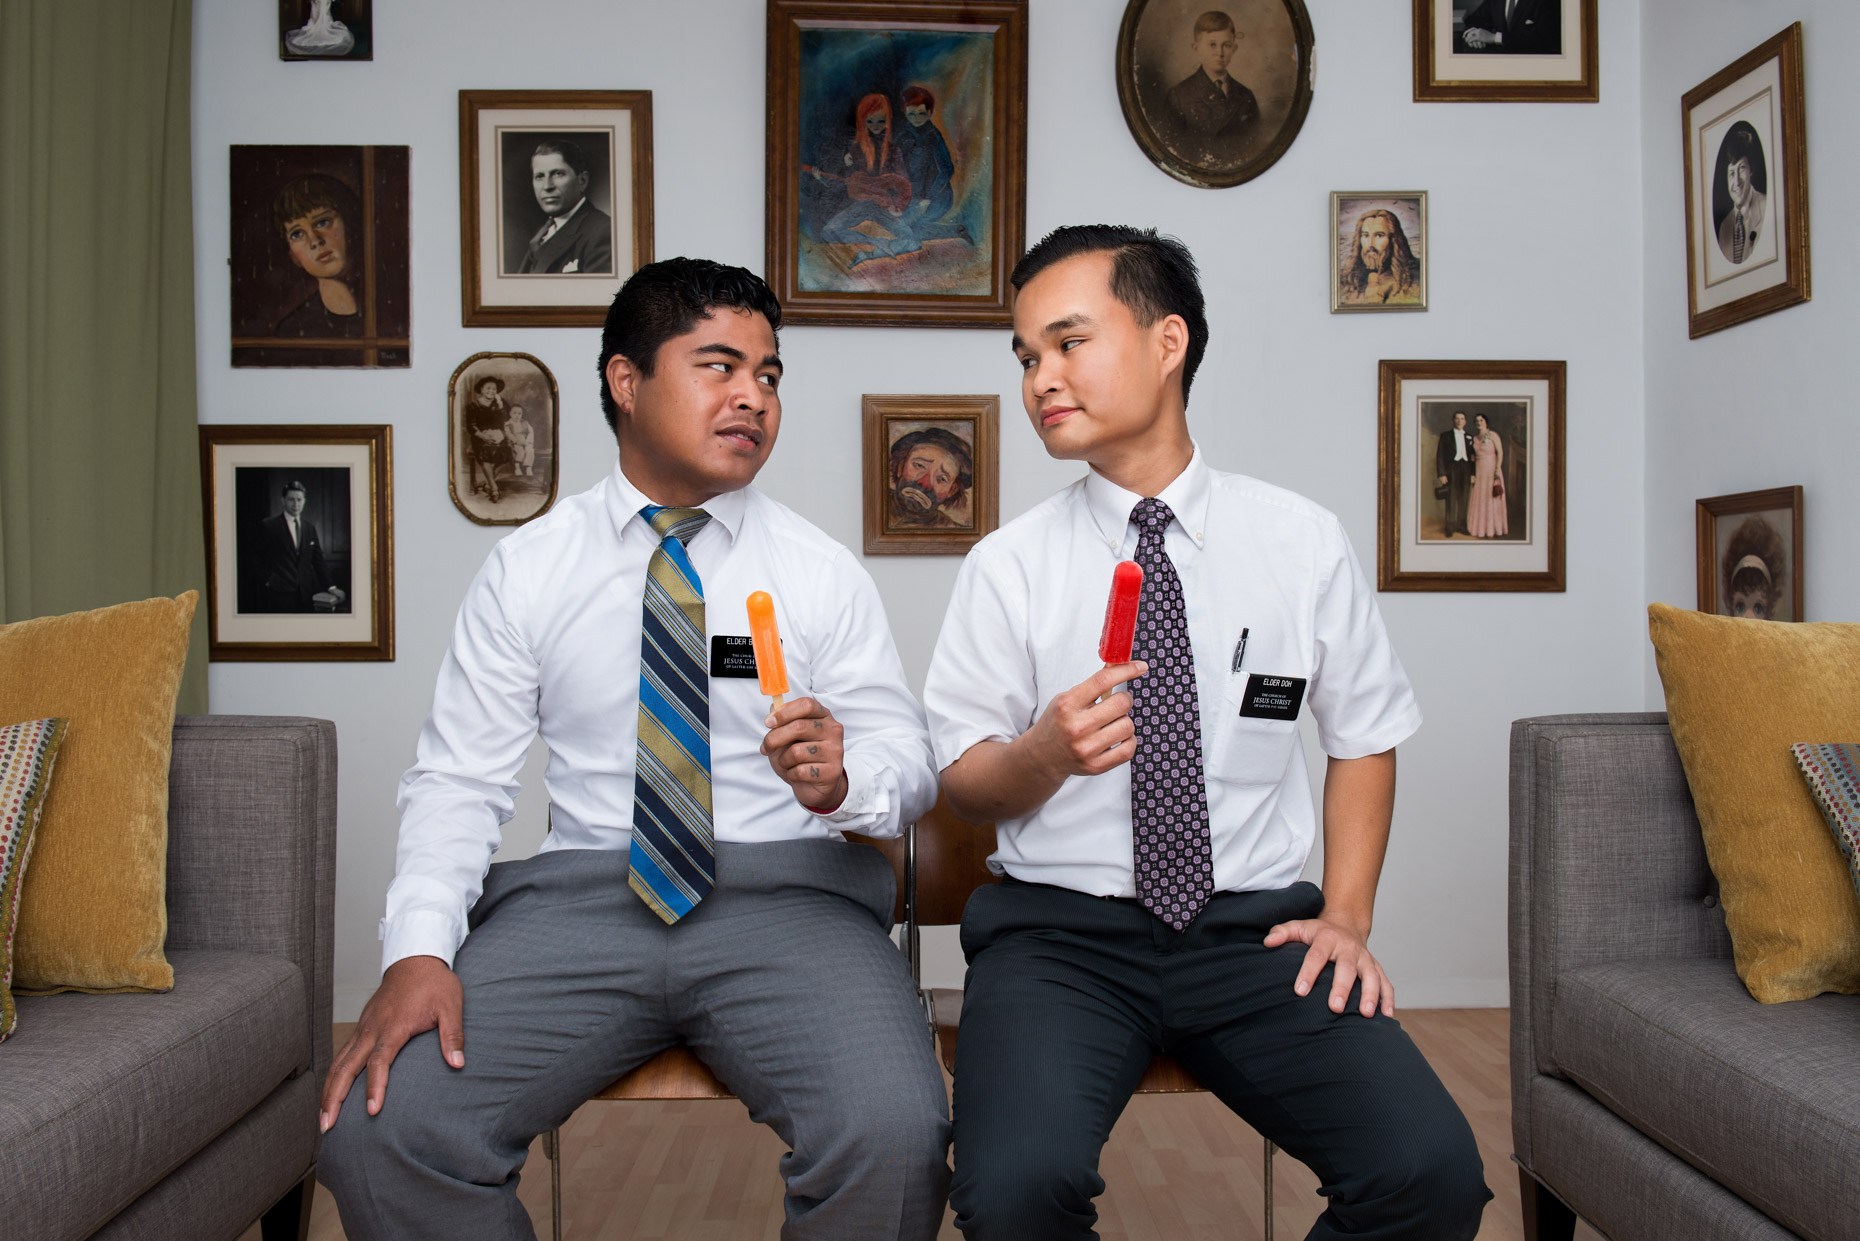 mormons-missionary-style_2